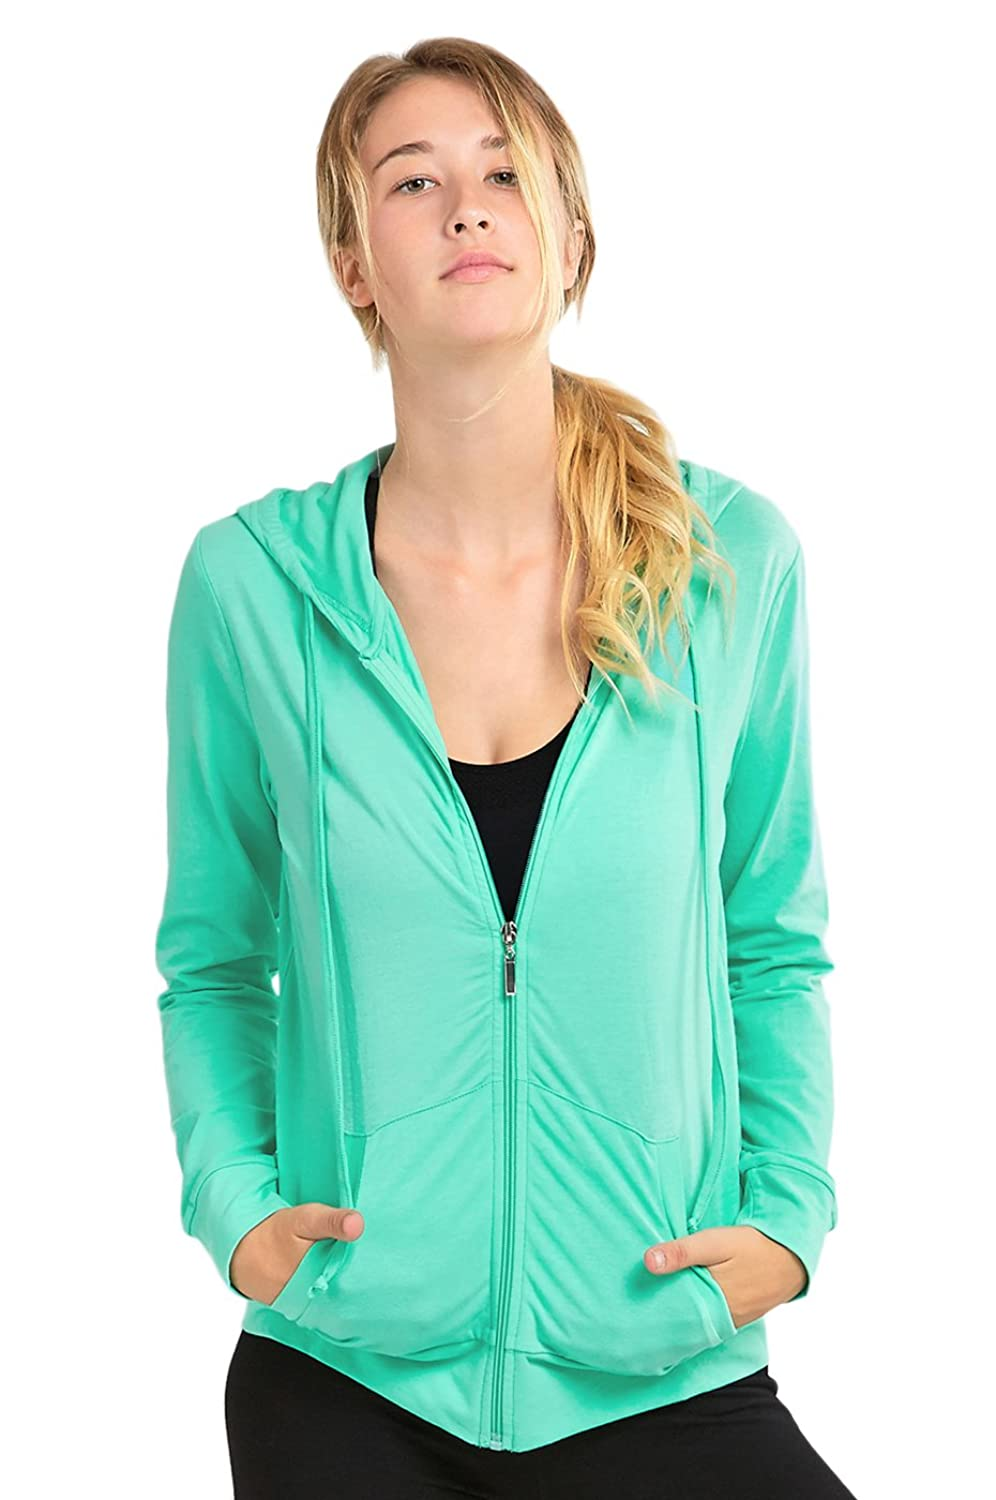 Sofra Women's Thin Cotton Zip-up Jacket with Hoodie